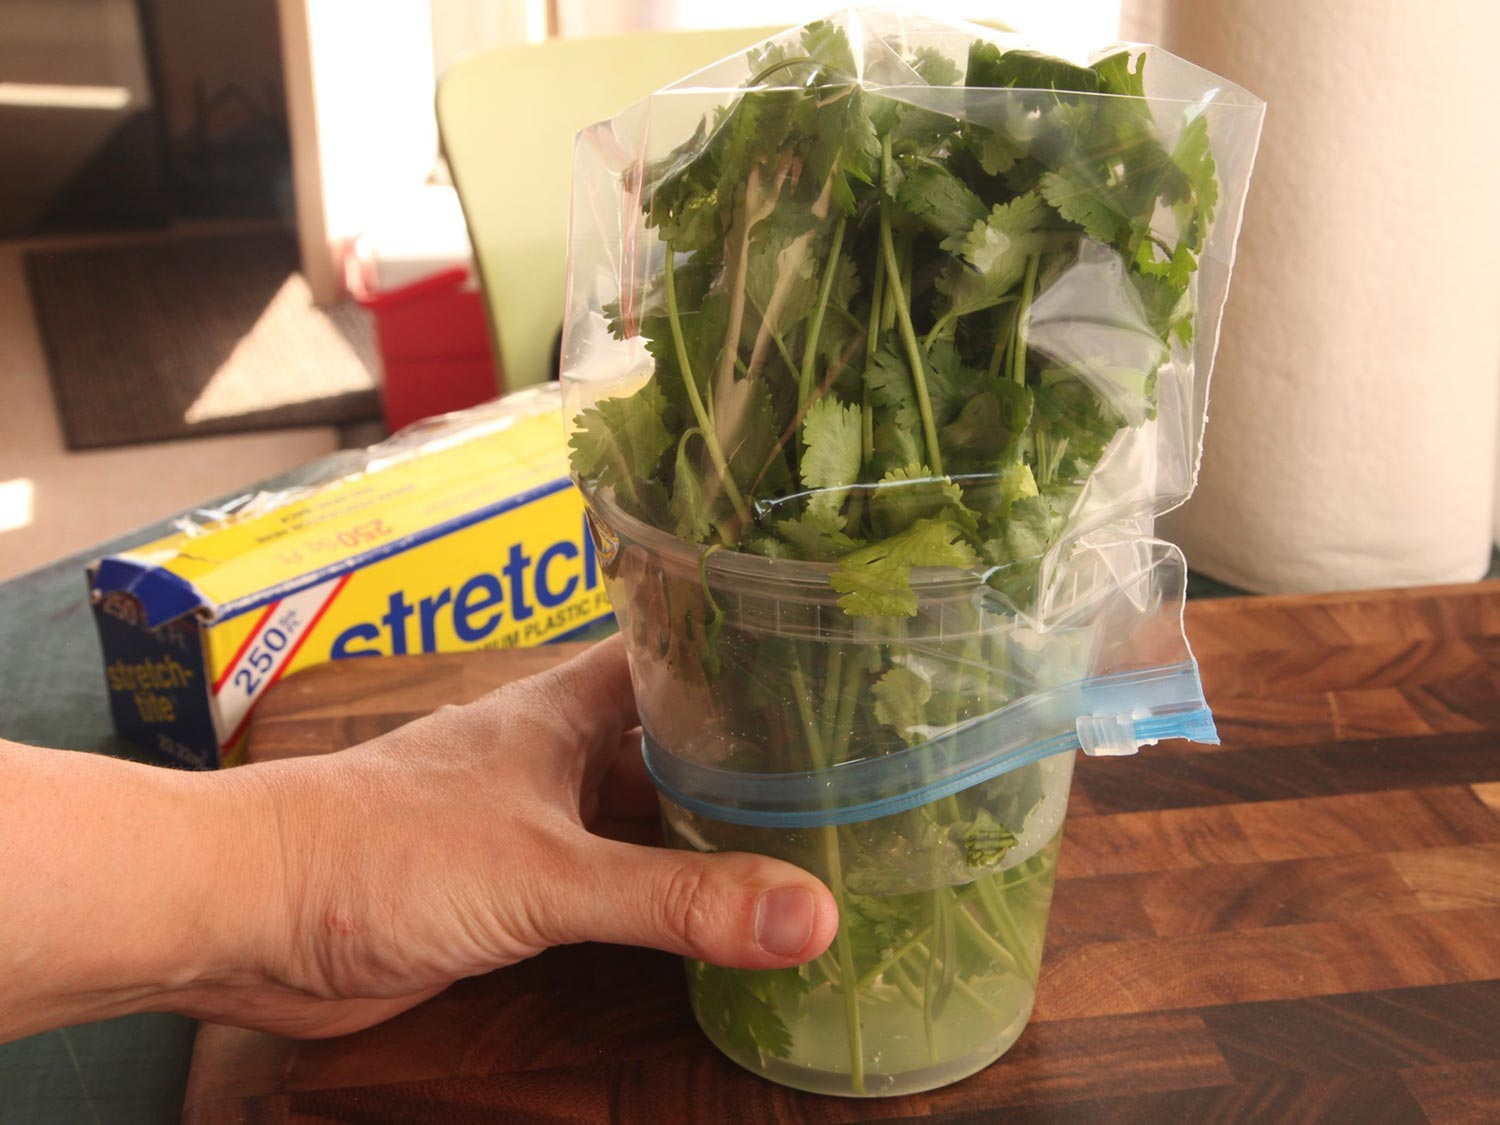 Storing fresh herbs in water and covered with a baggie.